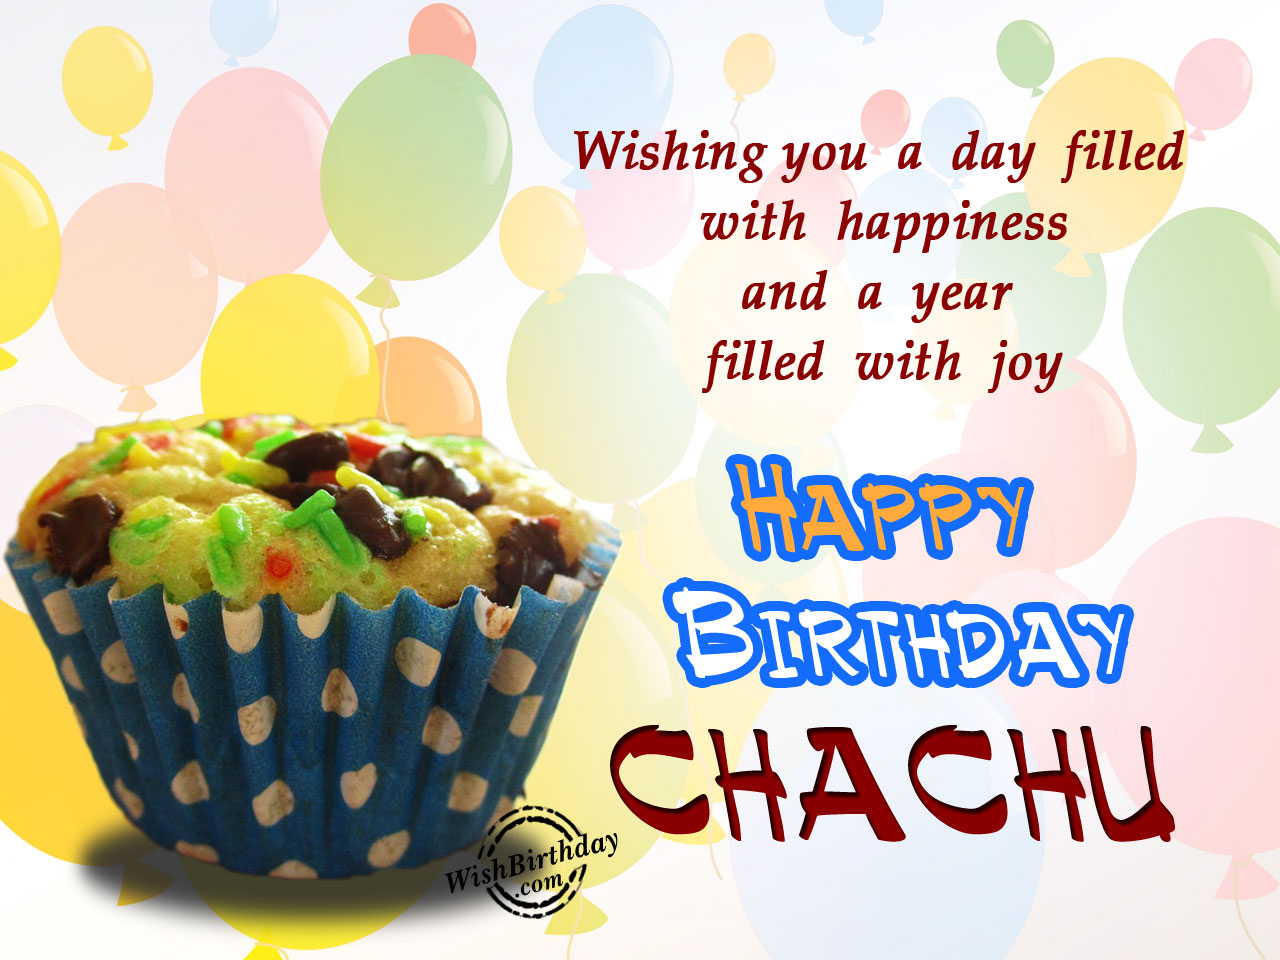 Birthday wishes for chacha ji birthday images pictures your day filled with happiness chachu kristyandbryce Gallery